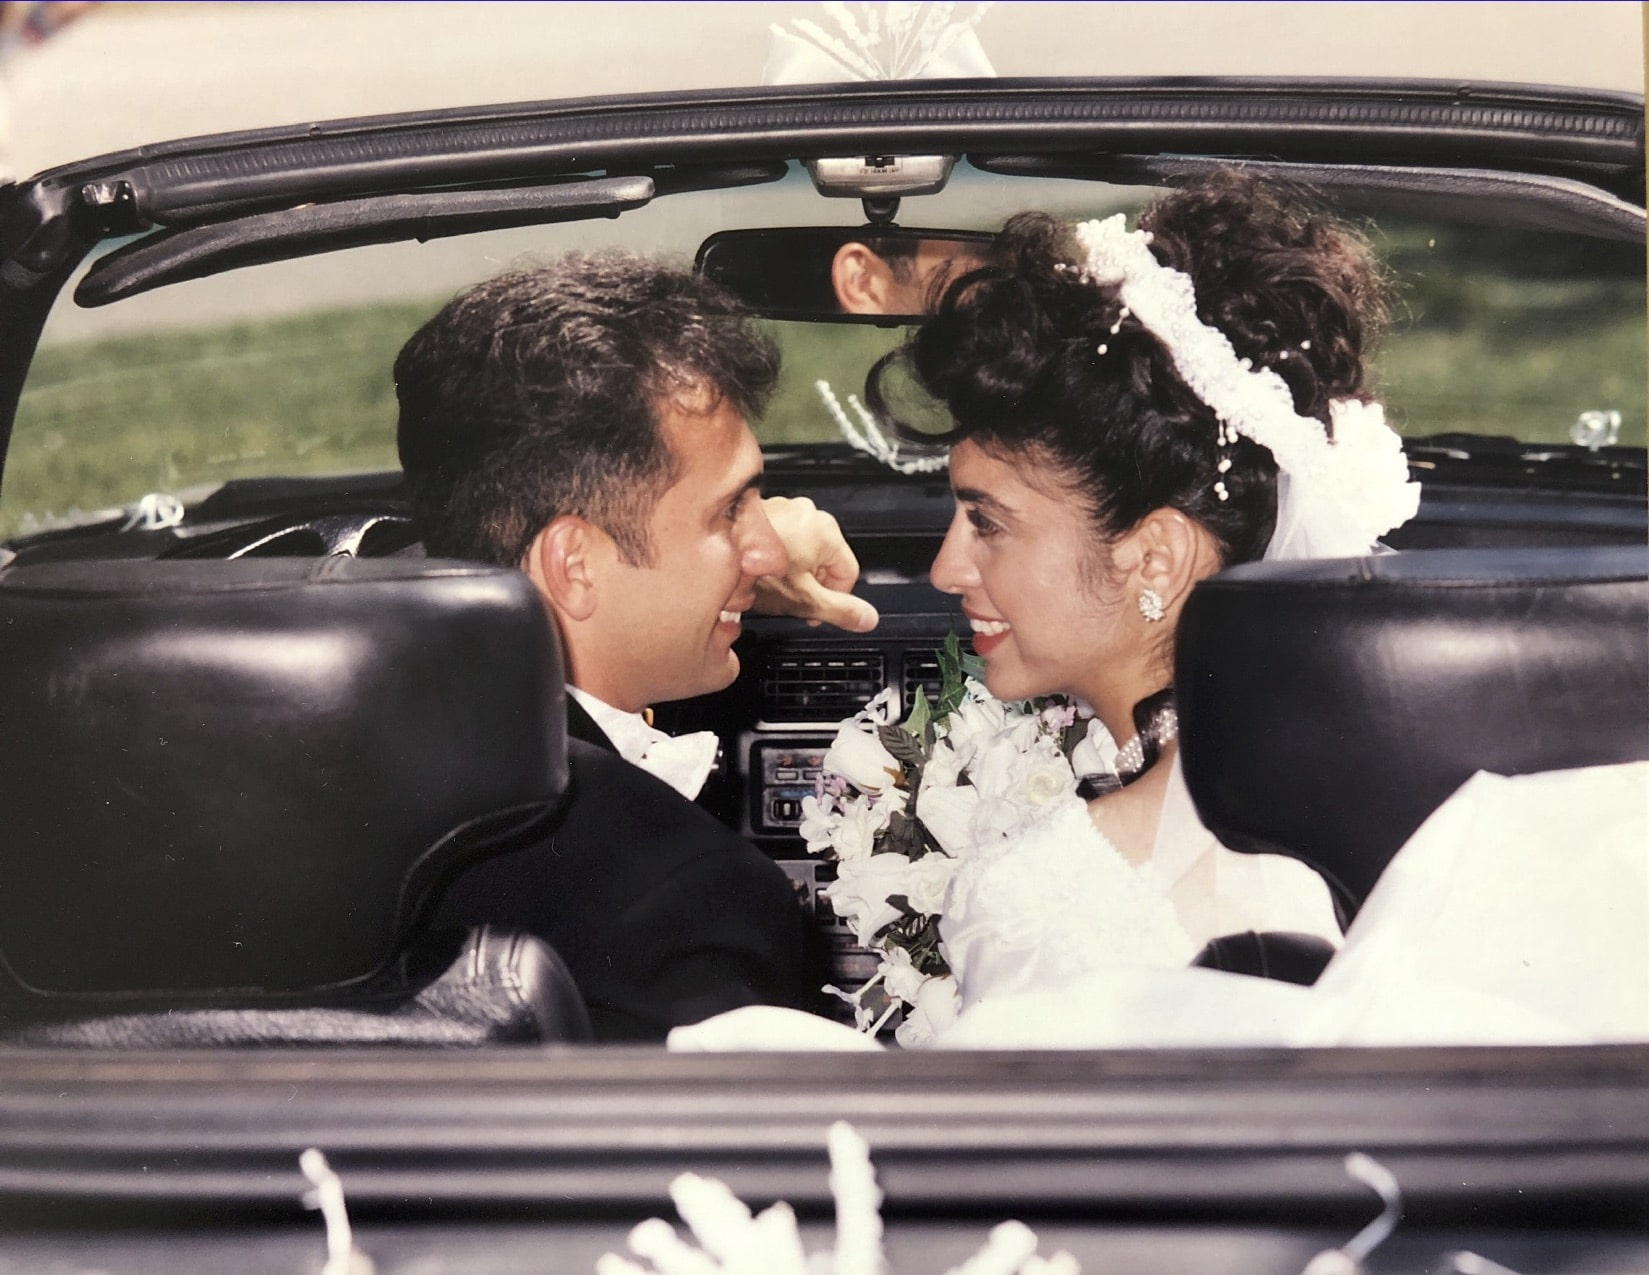 Newlyweds, driving away from the ceremony in a convertible